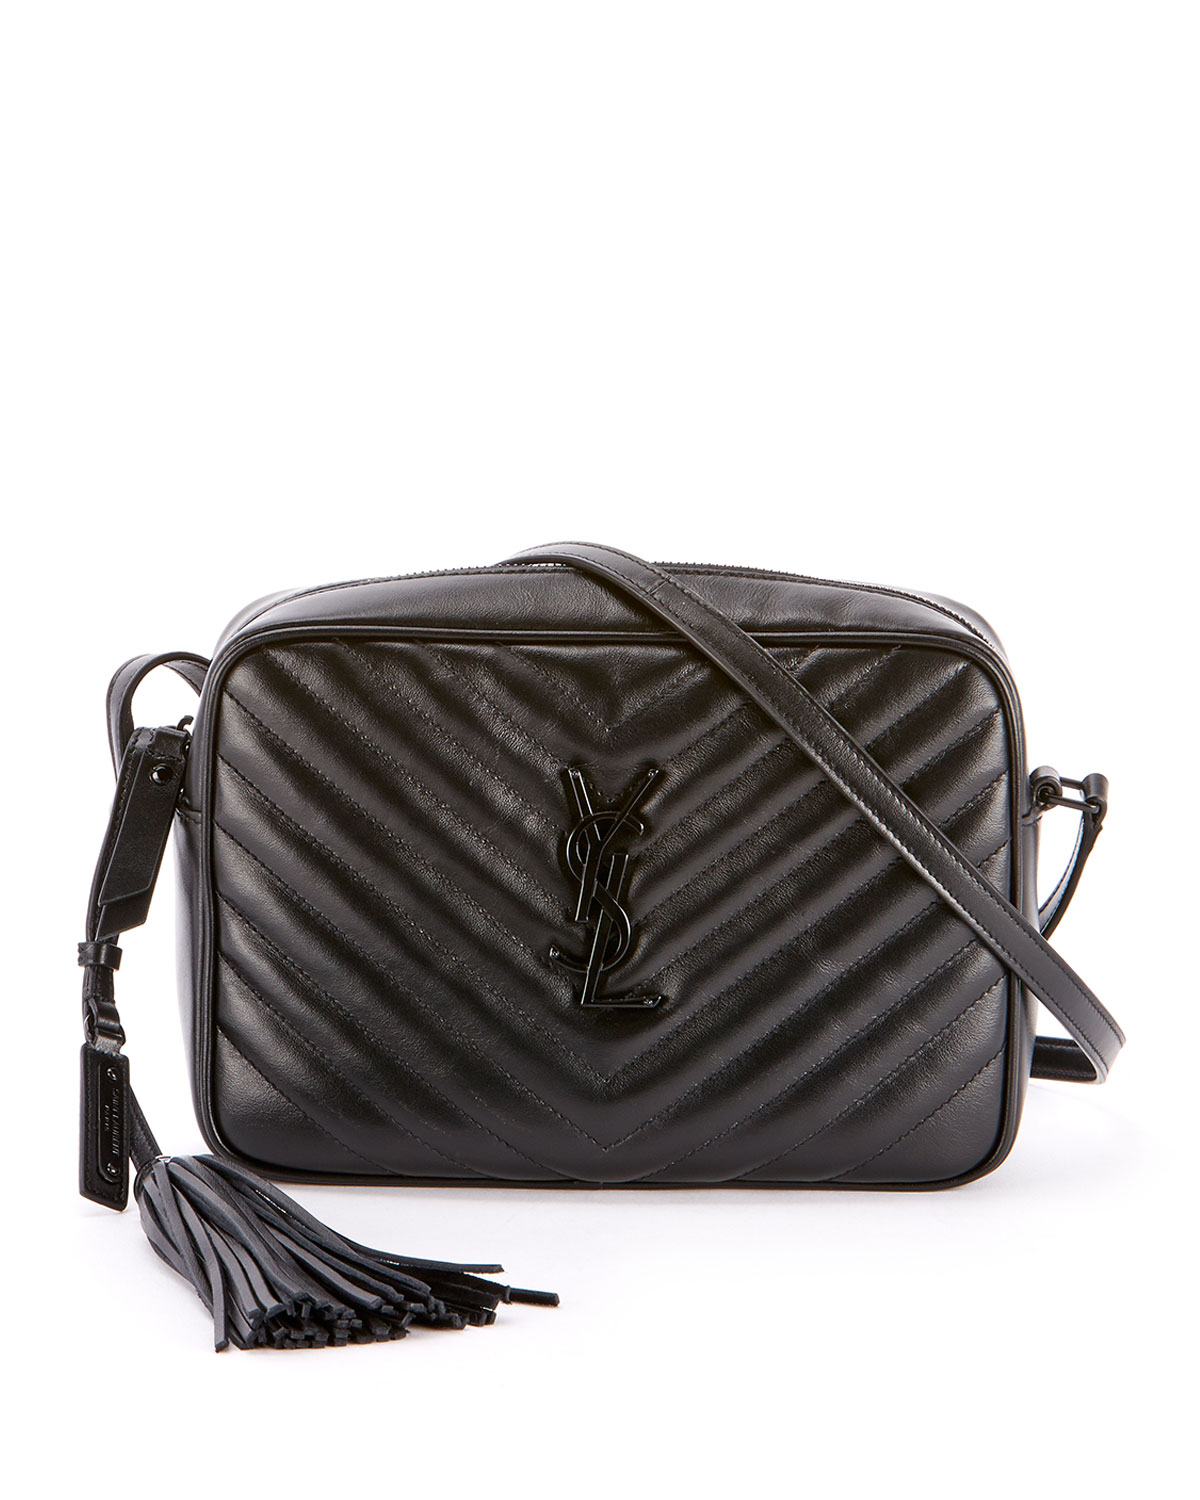 f3673a5470 Saint LaurentLoulou Monogram YSL Medium Chevron Quilted Leather Camera Shoulder  Bag - Black Hardware